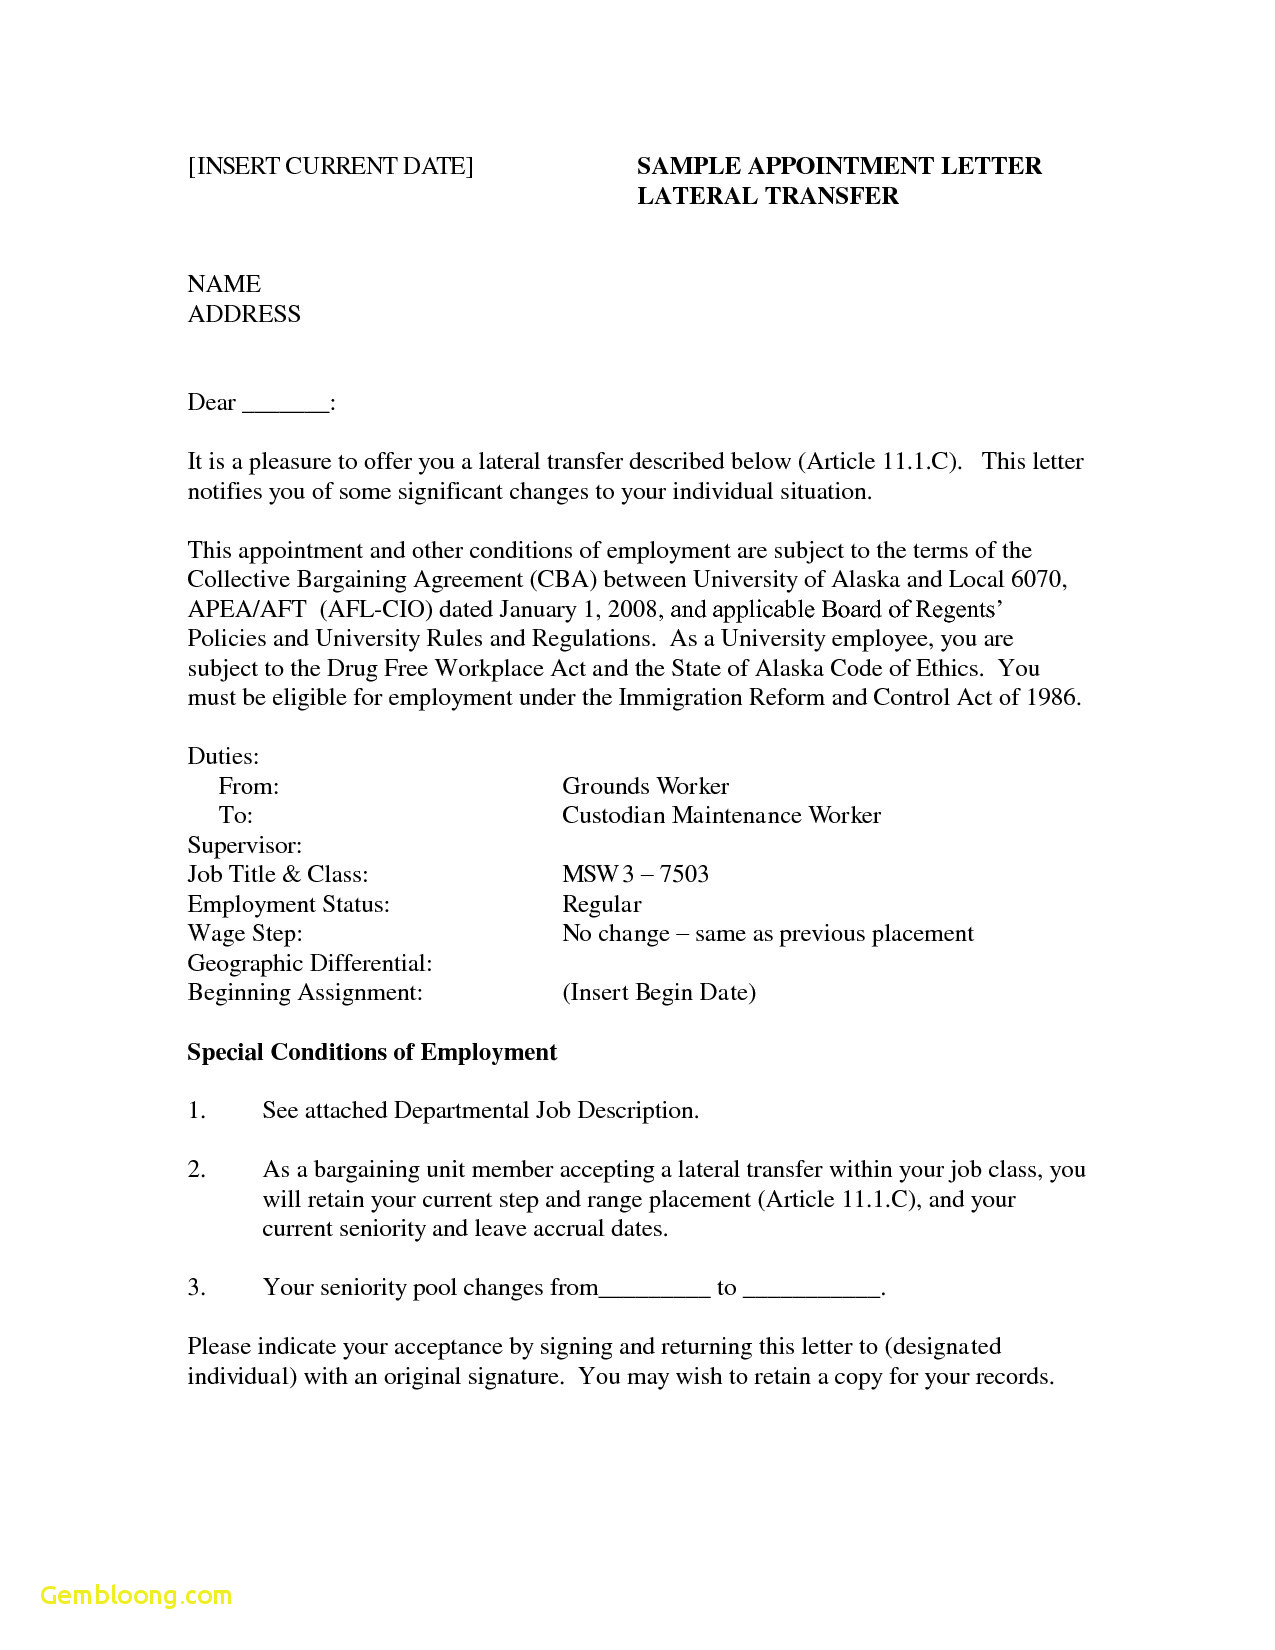 Cover Letter Service Customer Service Cover Letter Template Word Collection Letter